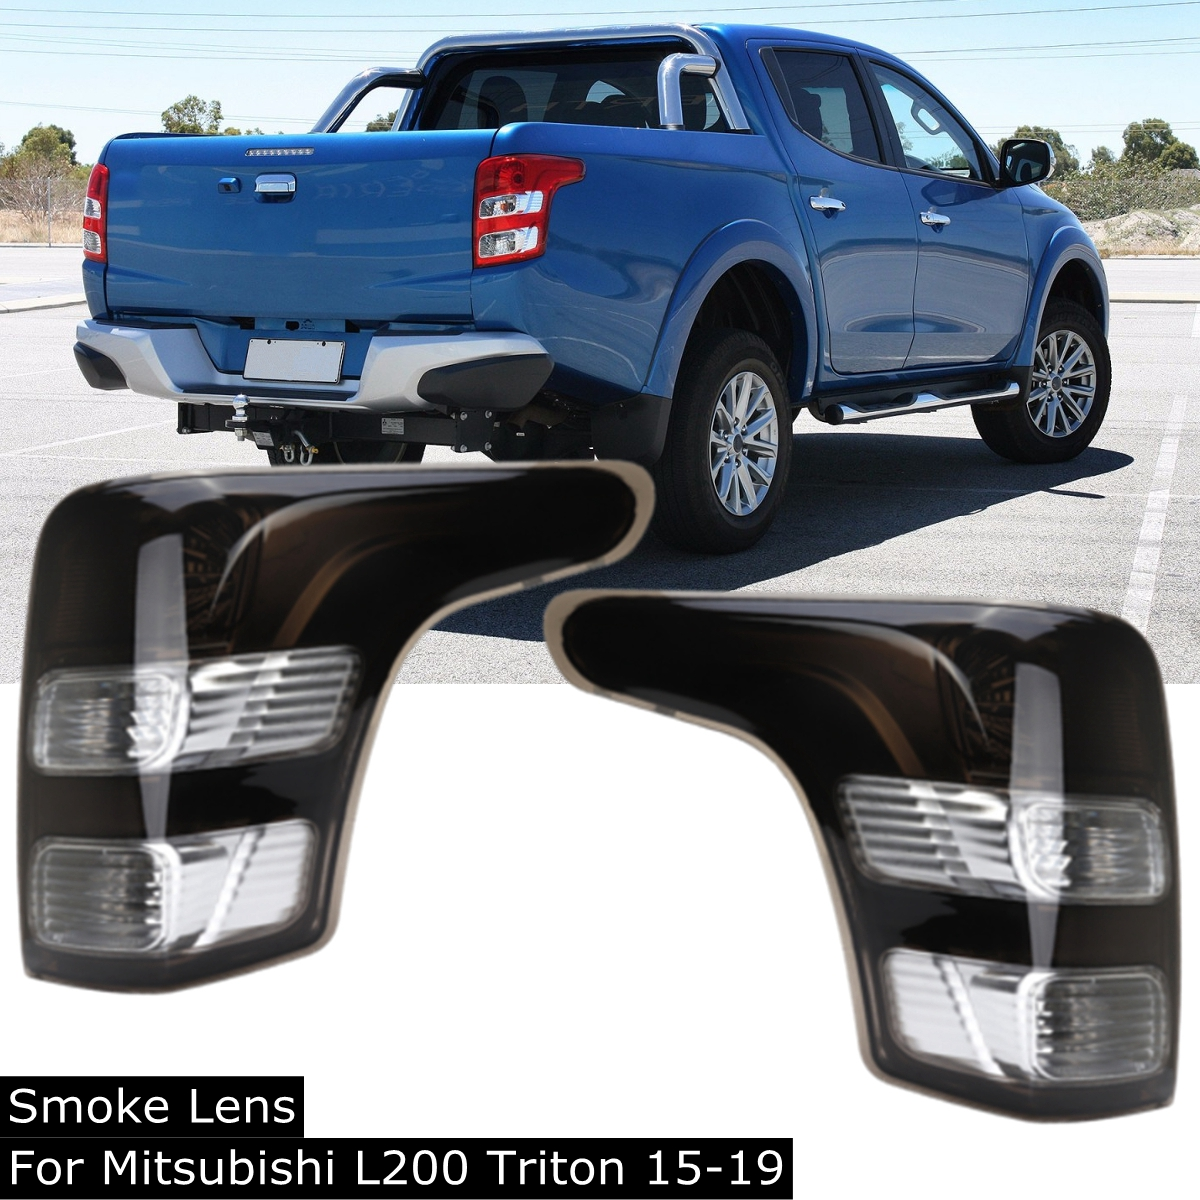 Black Car Tail Light Truck Rear Lamps Tailights Warning Lights Rear Parts Left Right Lens for Mitsubishi L200 for Triton 2015-onBlack Car Tail Light Truck Rear Lamps Tailights Warning Lights Rear Parts Left Right Lens for Mitsubishi L200 for Triton 2015-on